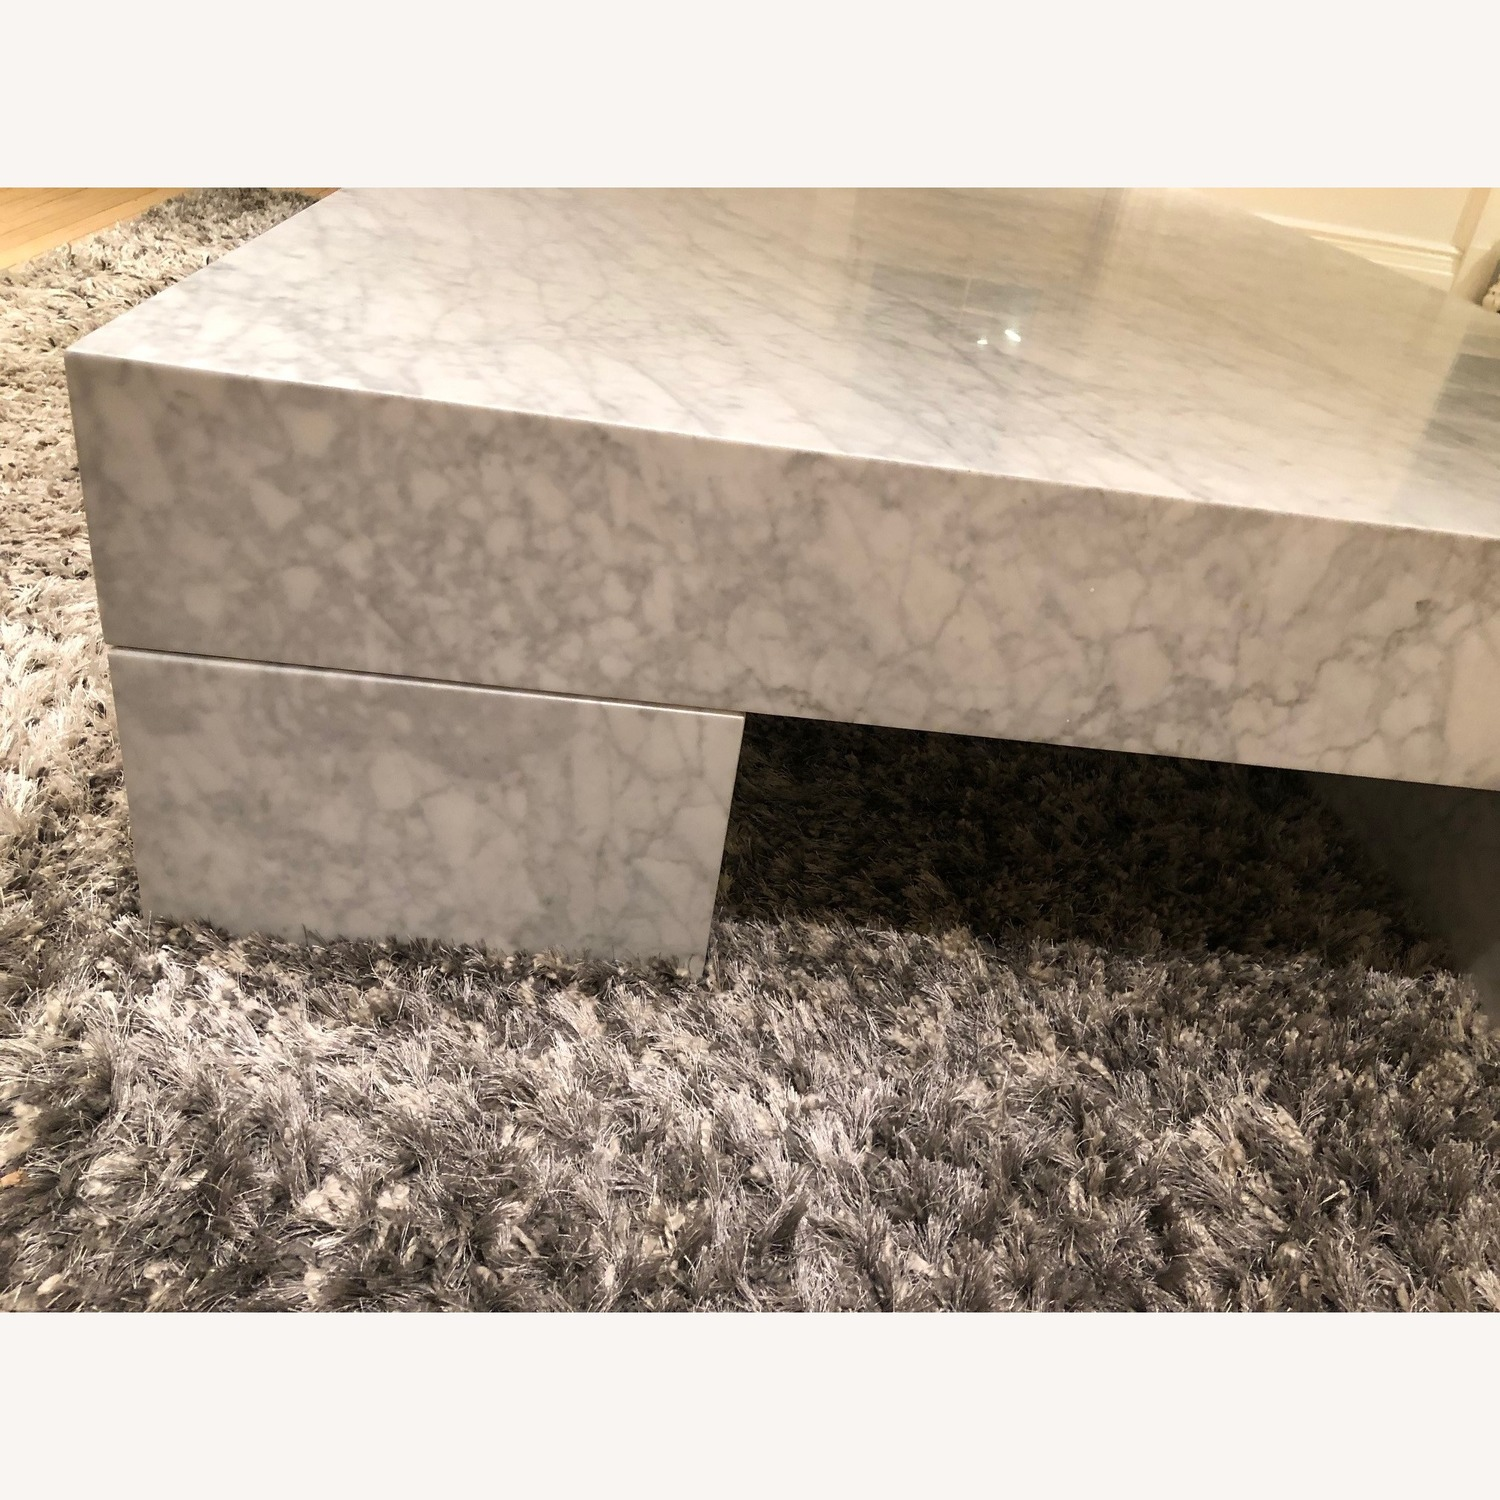 Restoration Hardware Marble Parsons Coffee Table - image-8